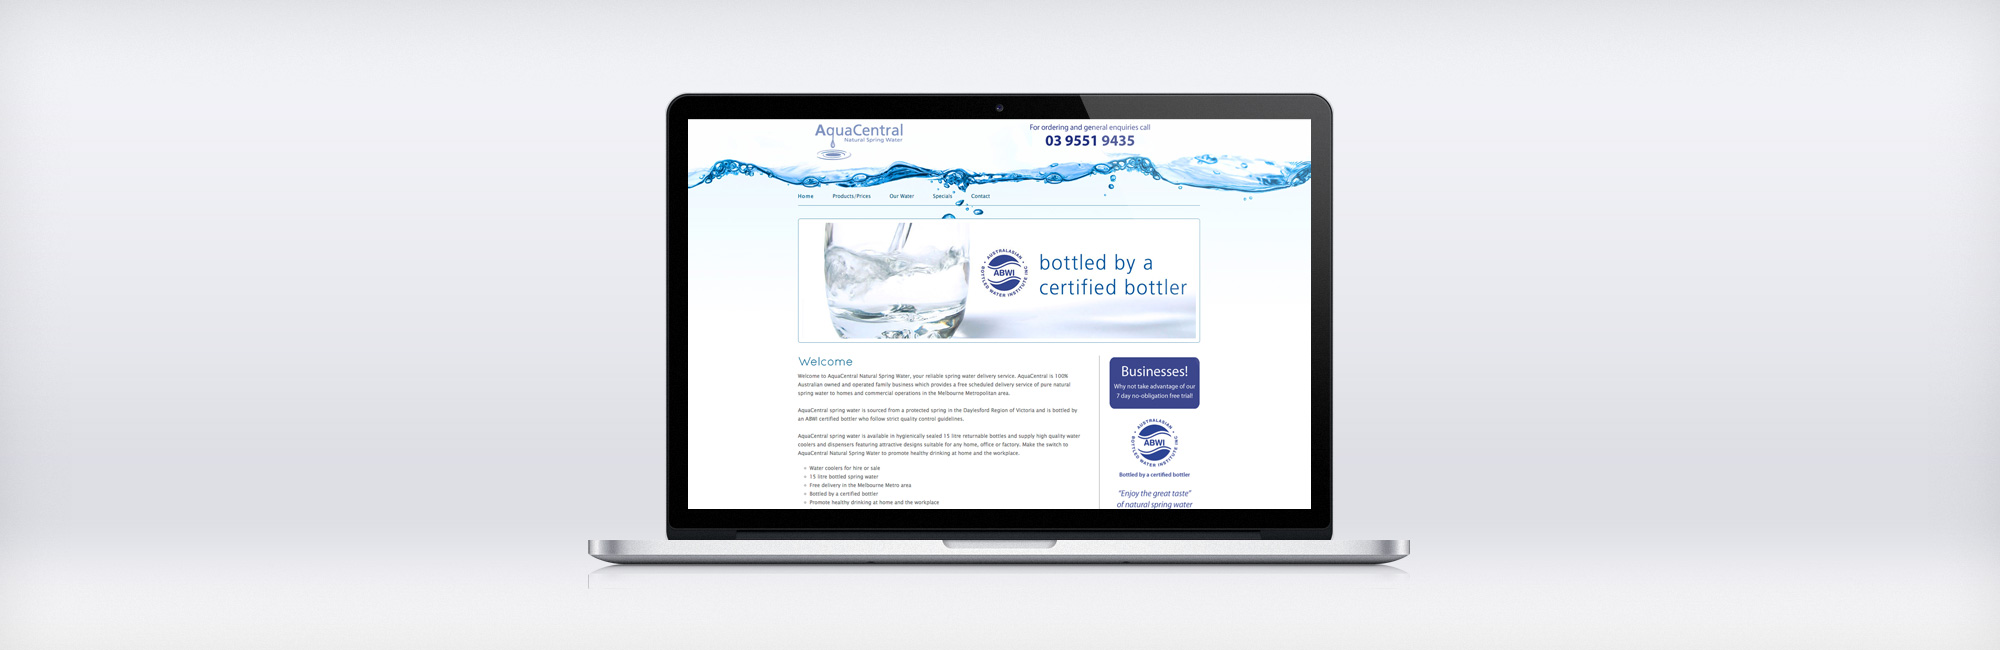 Website AquaCentral